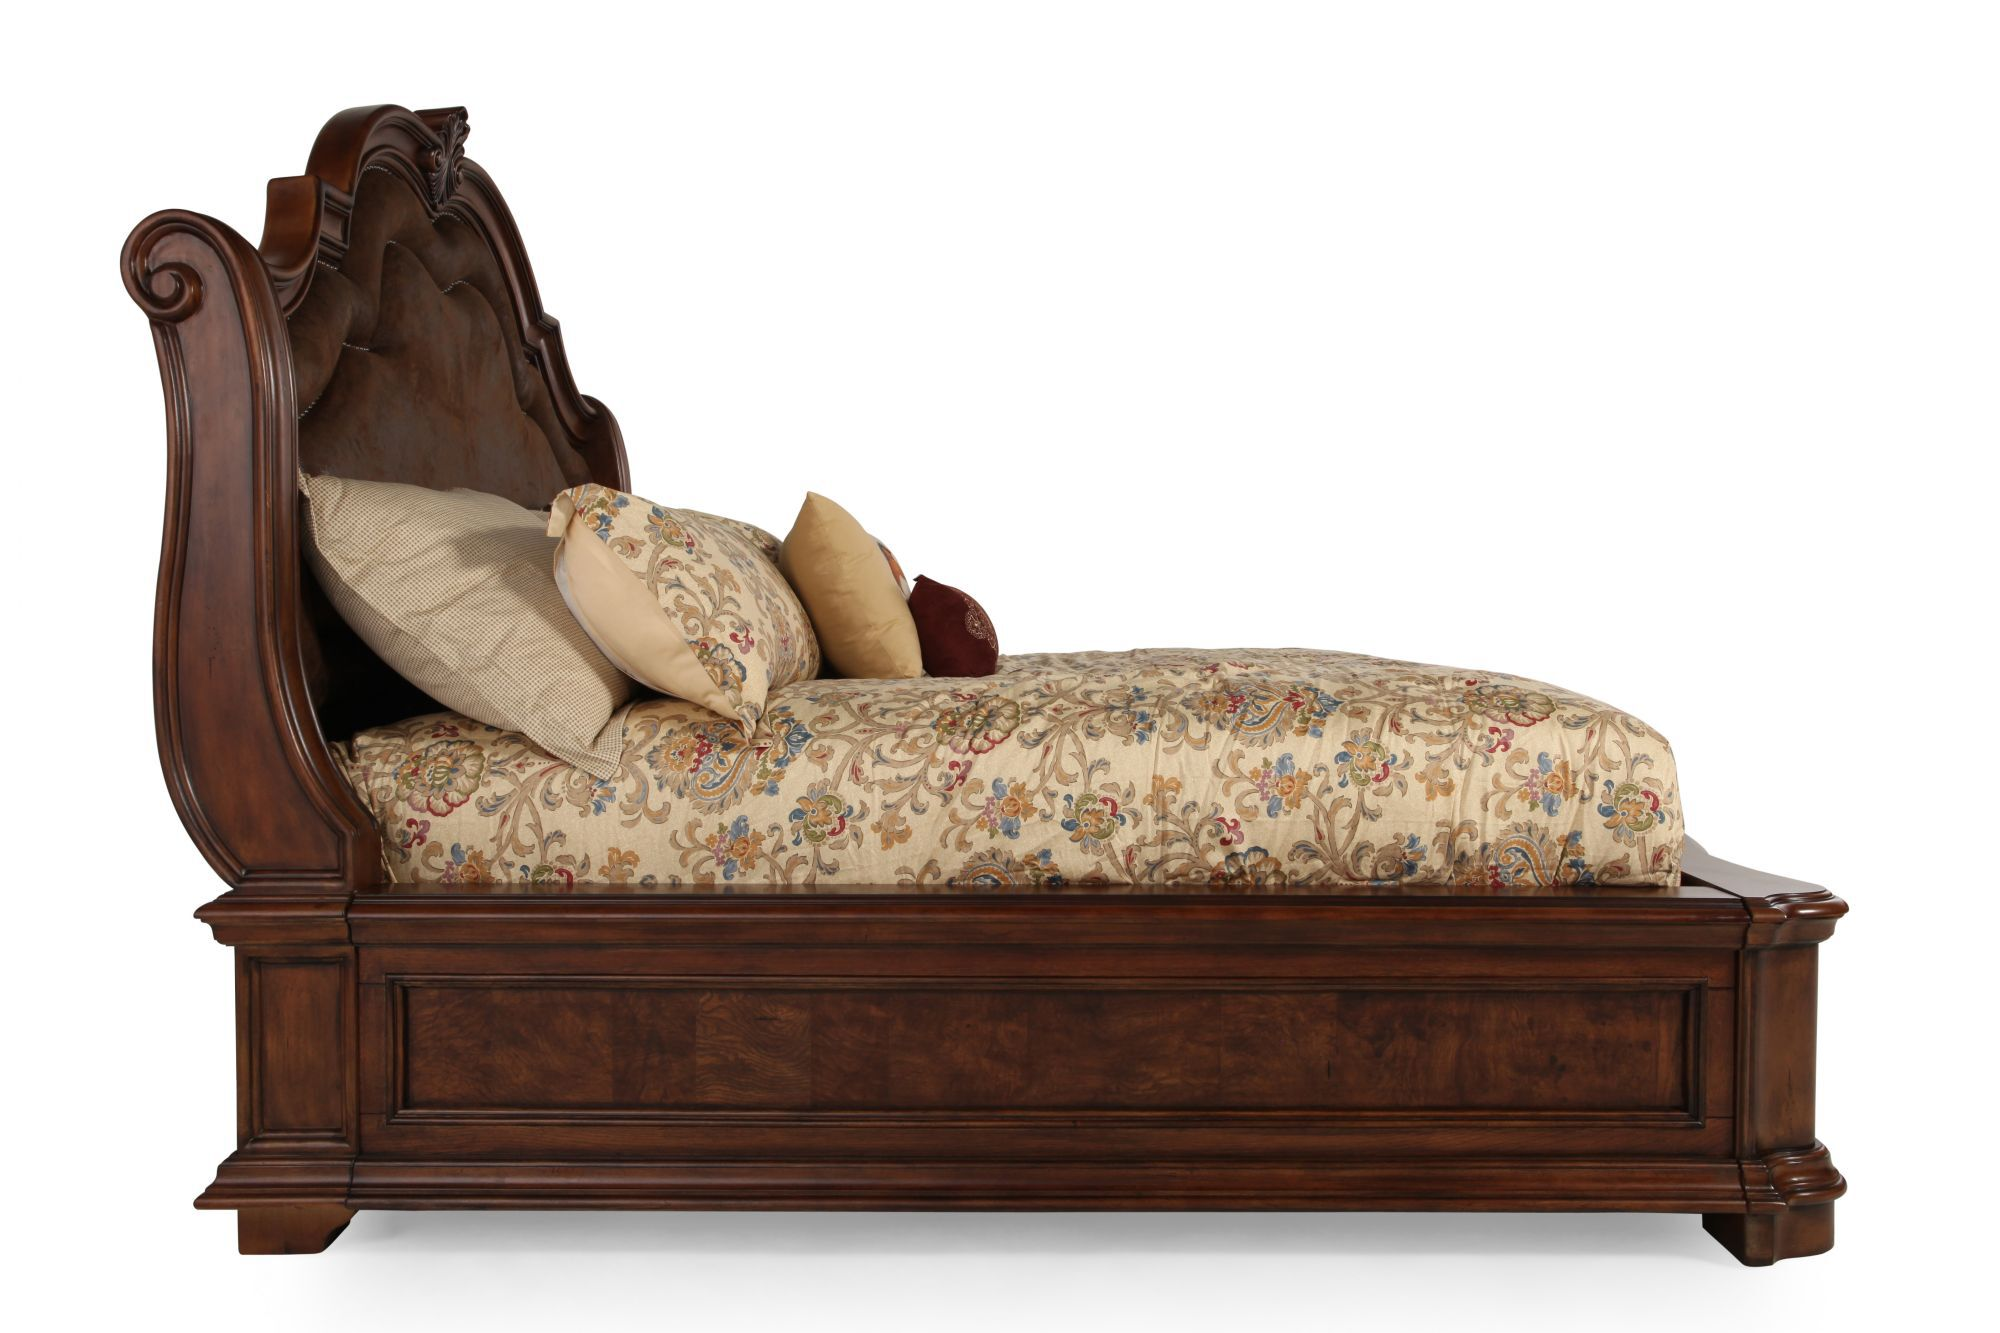 76u0026quot; Traditional Arched Sleigh Bed ...